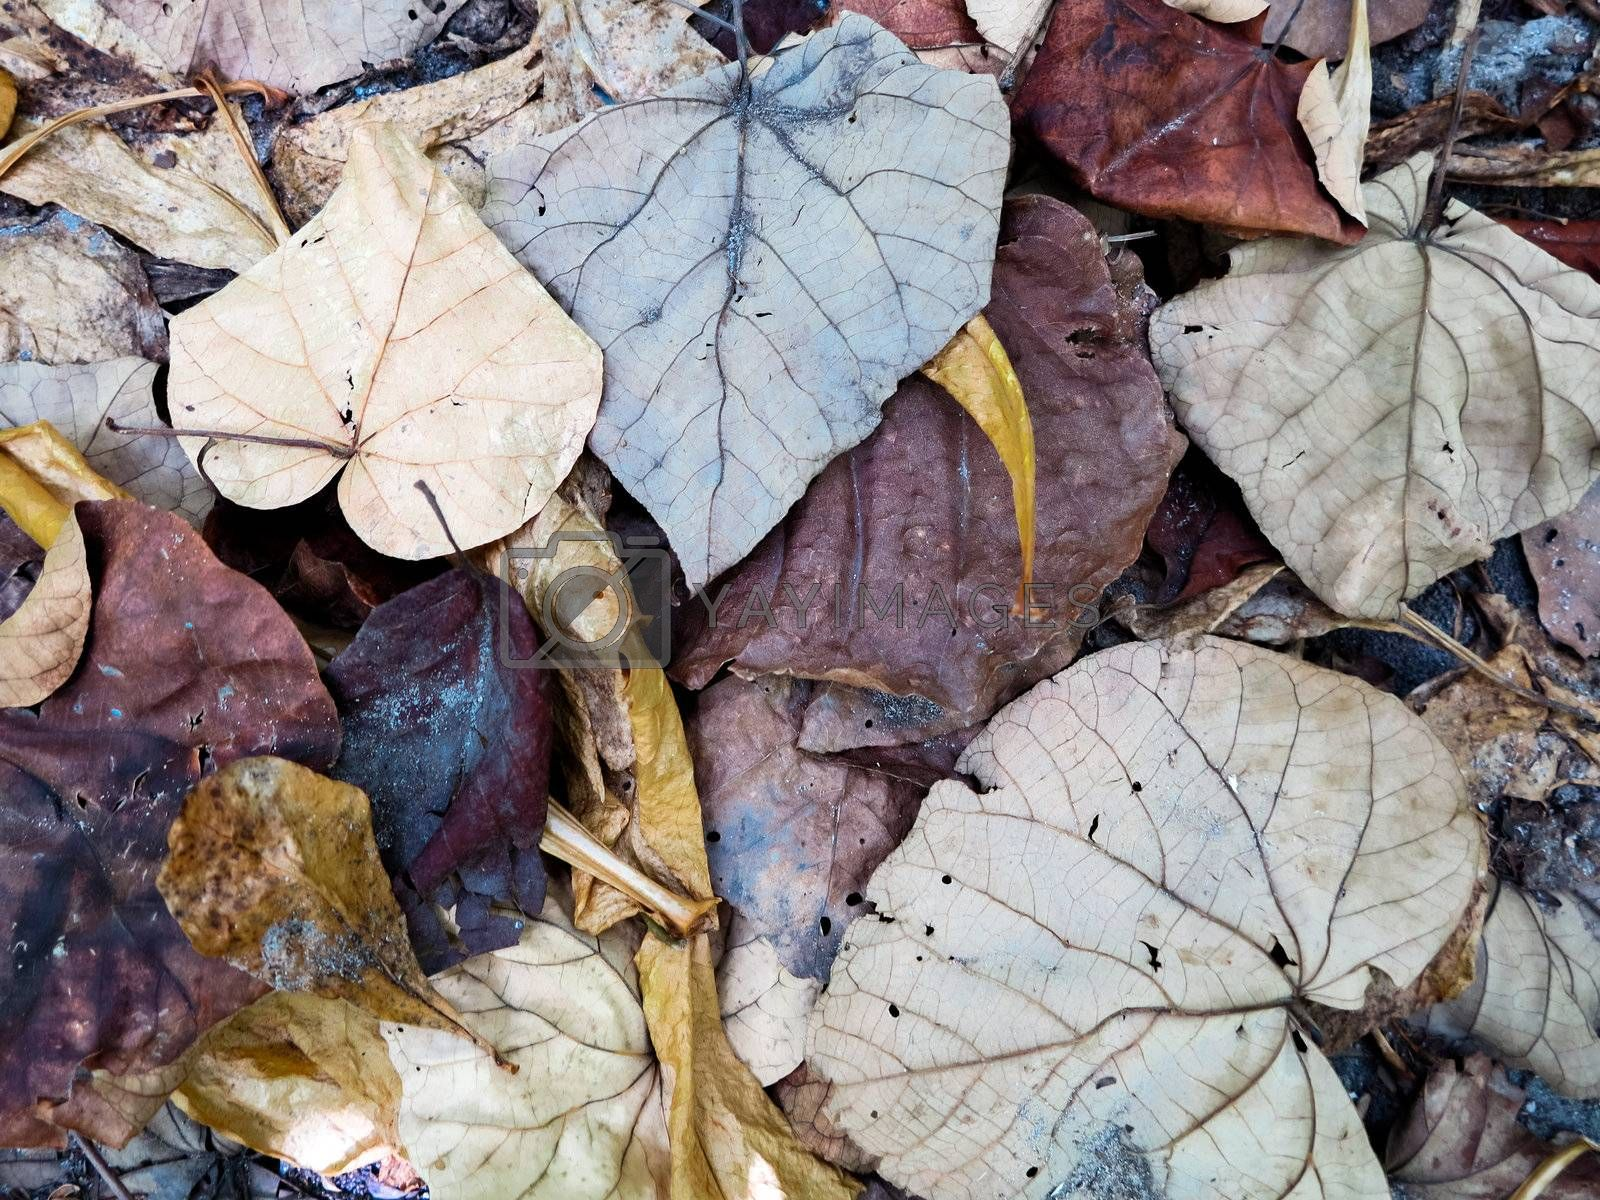 Decaying leaves, closeup shot by get4net